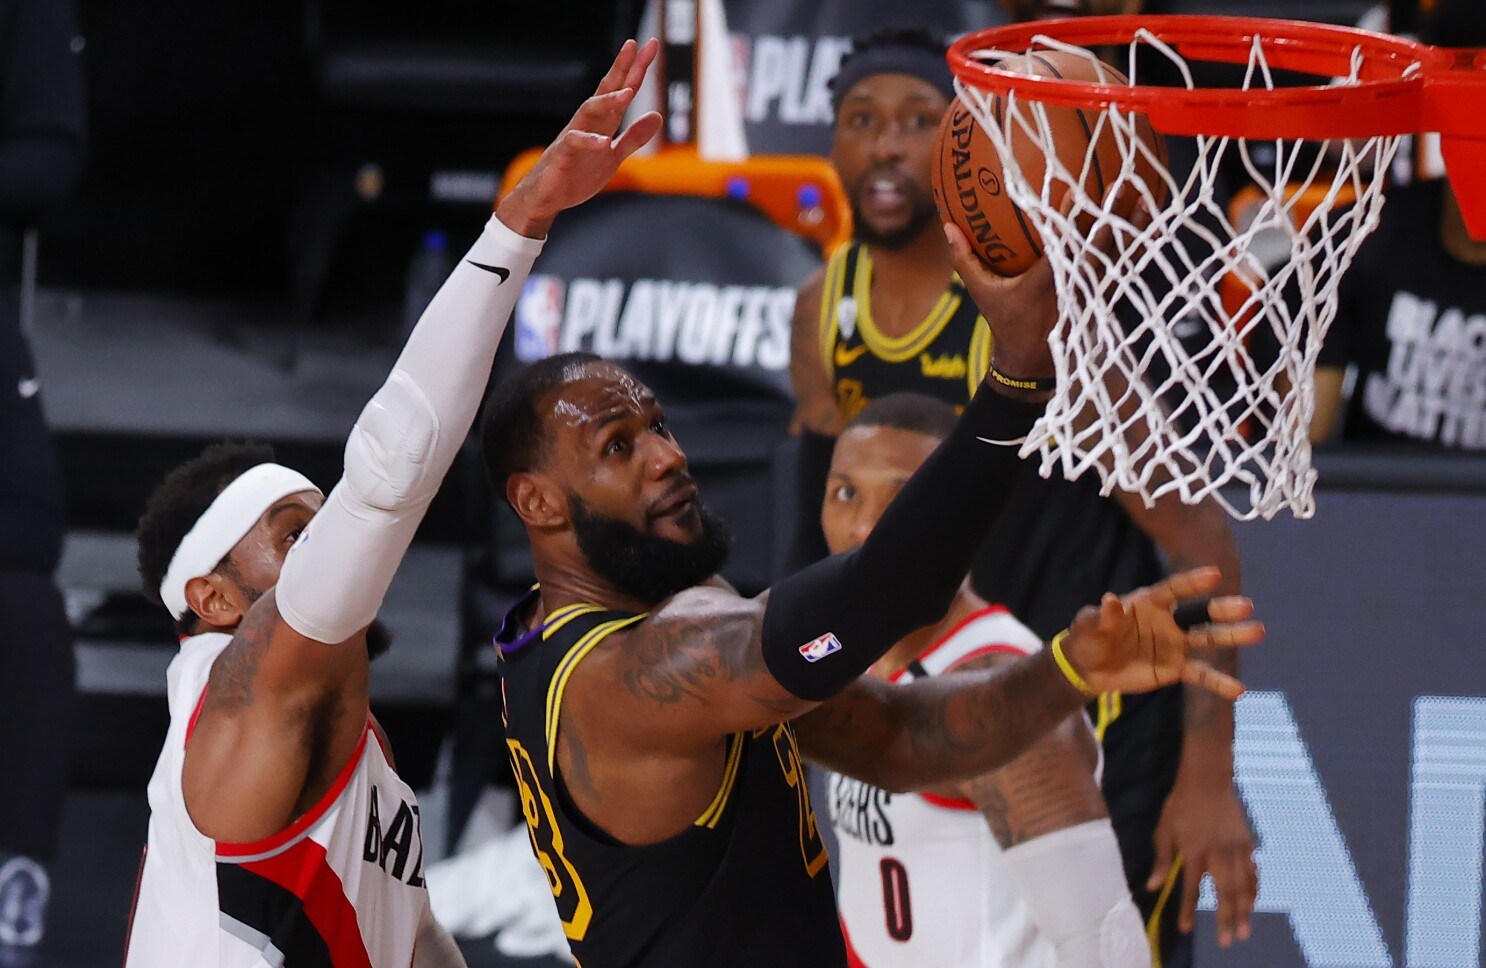 Lakers Honor Kobe Bryant And Ruthlessly Crush Trail Blazers Los Angeles Times